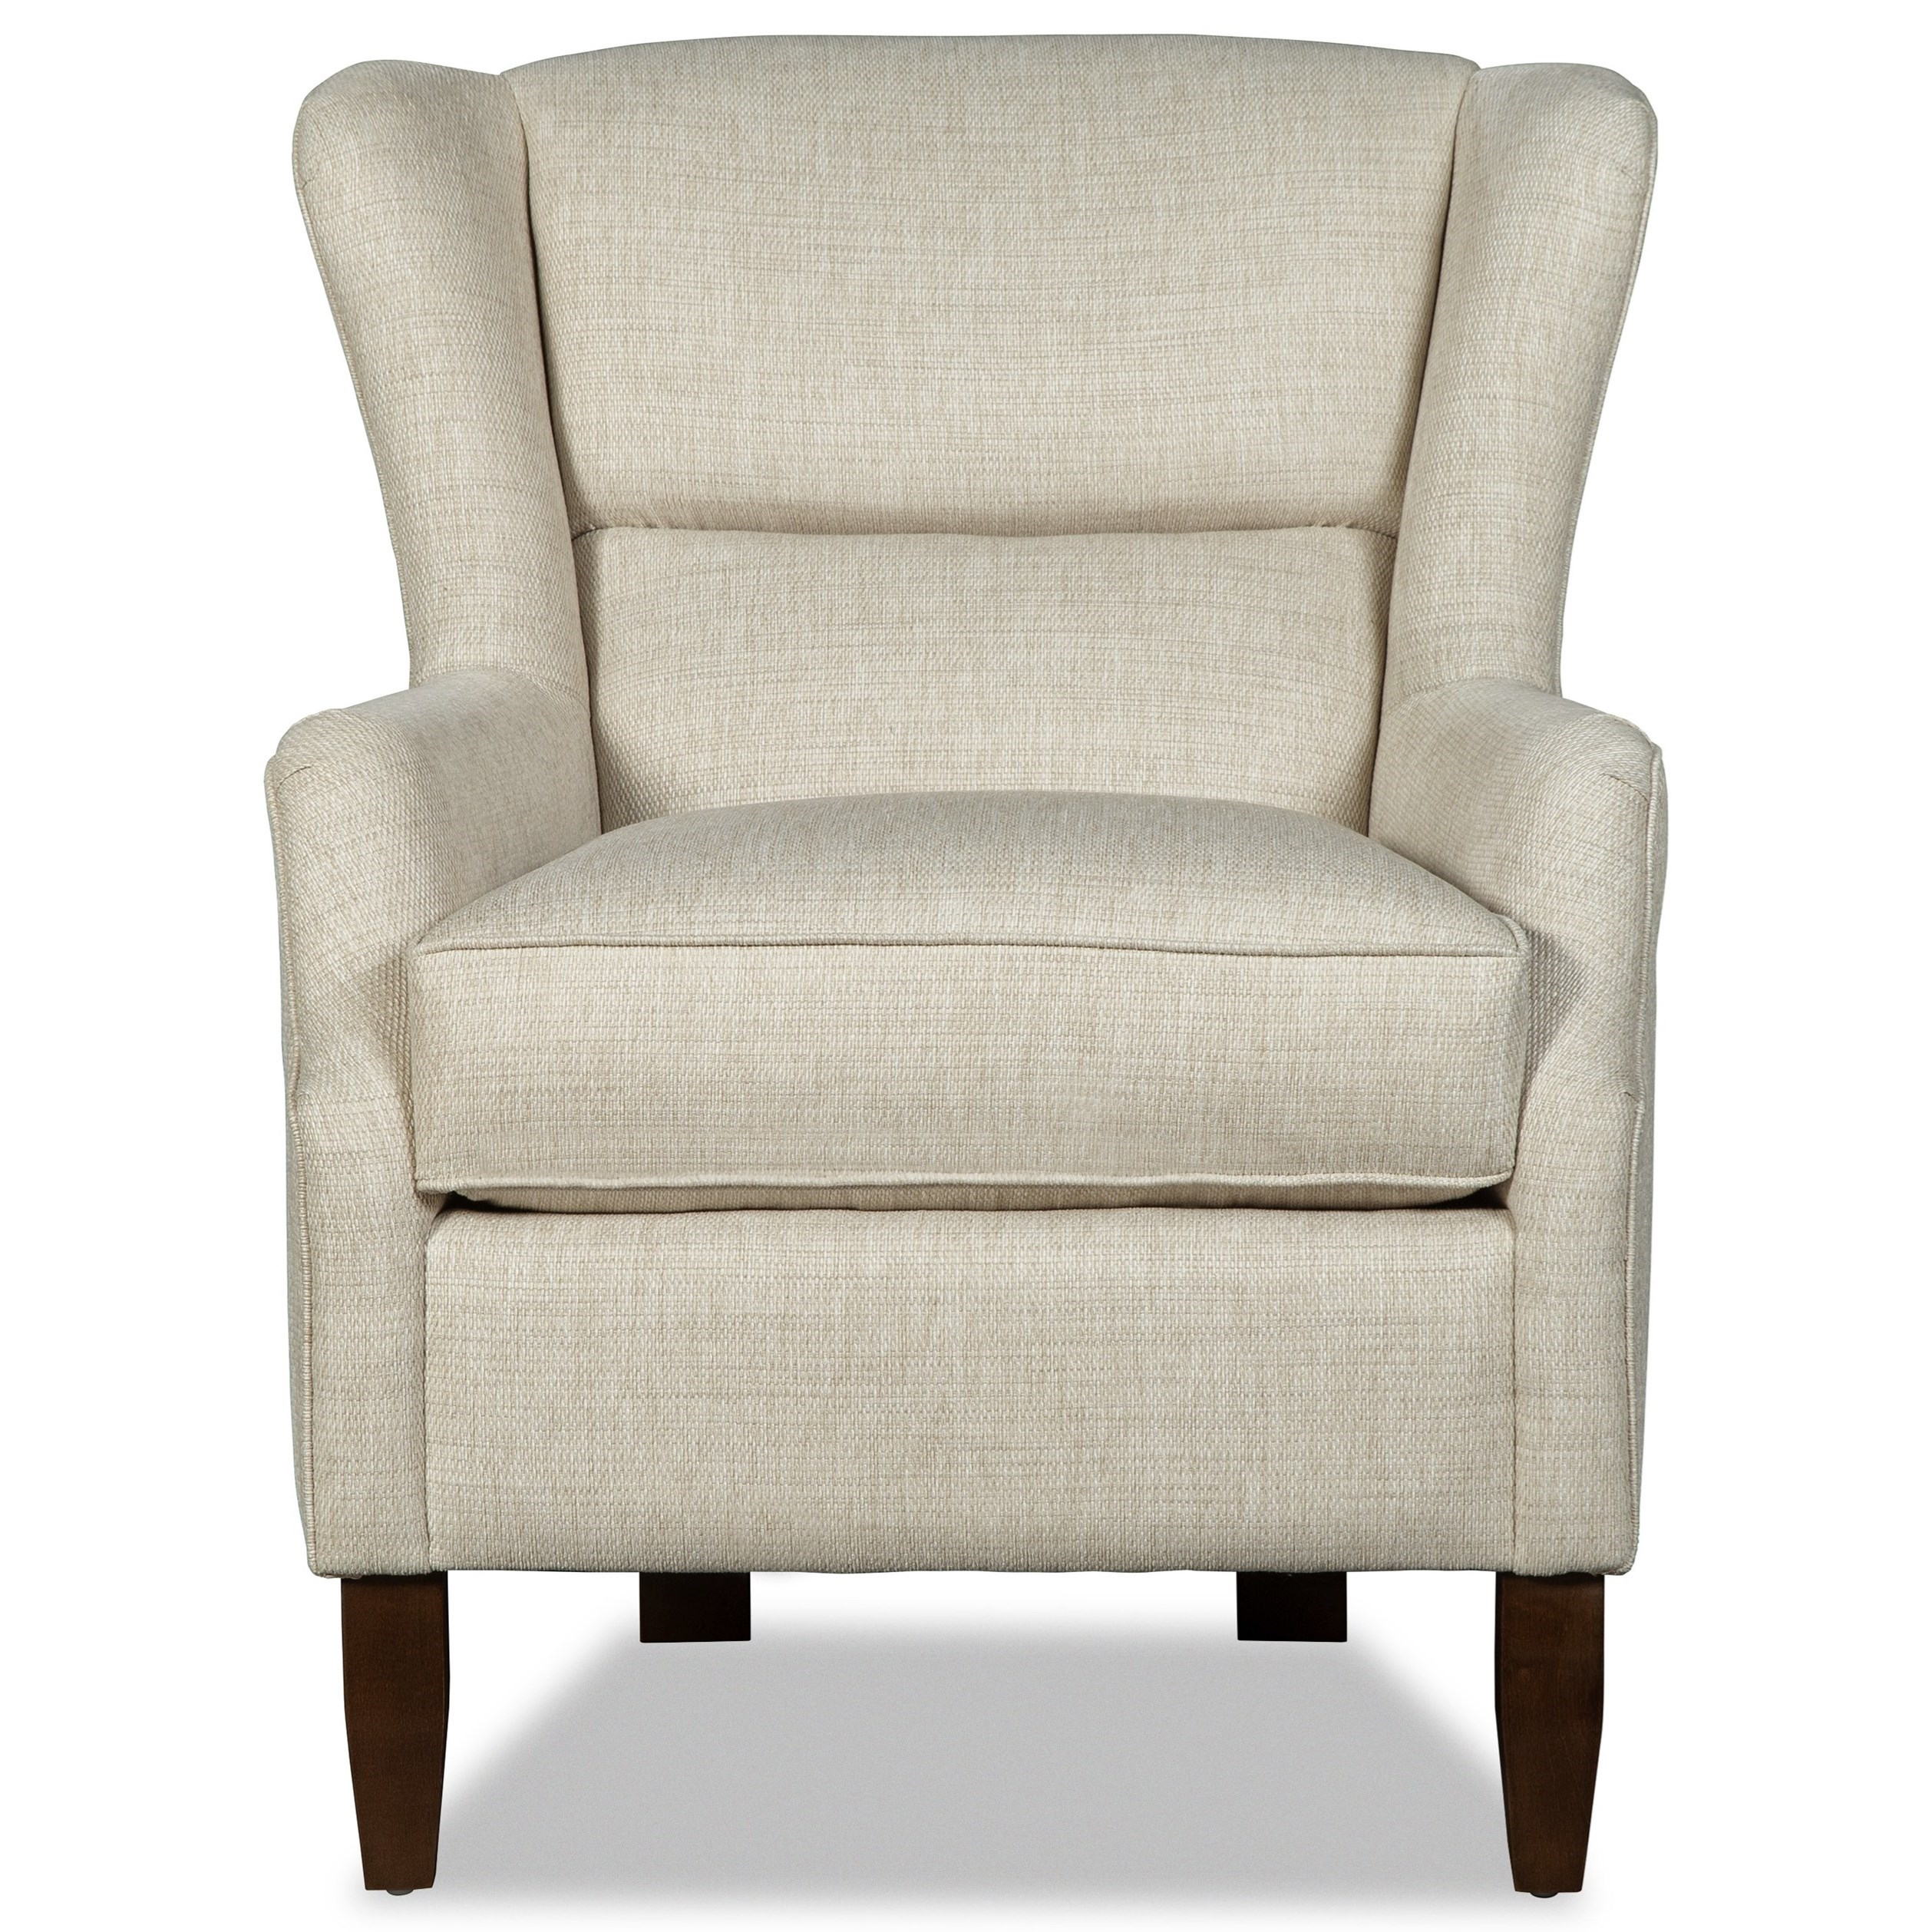 007910 Wing Chair by Craftmaster at Lagniappe Home Store